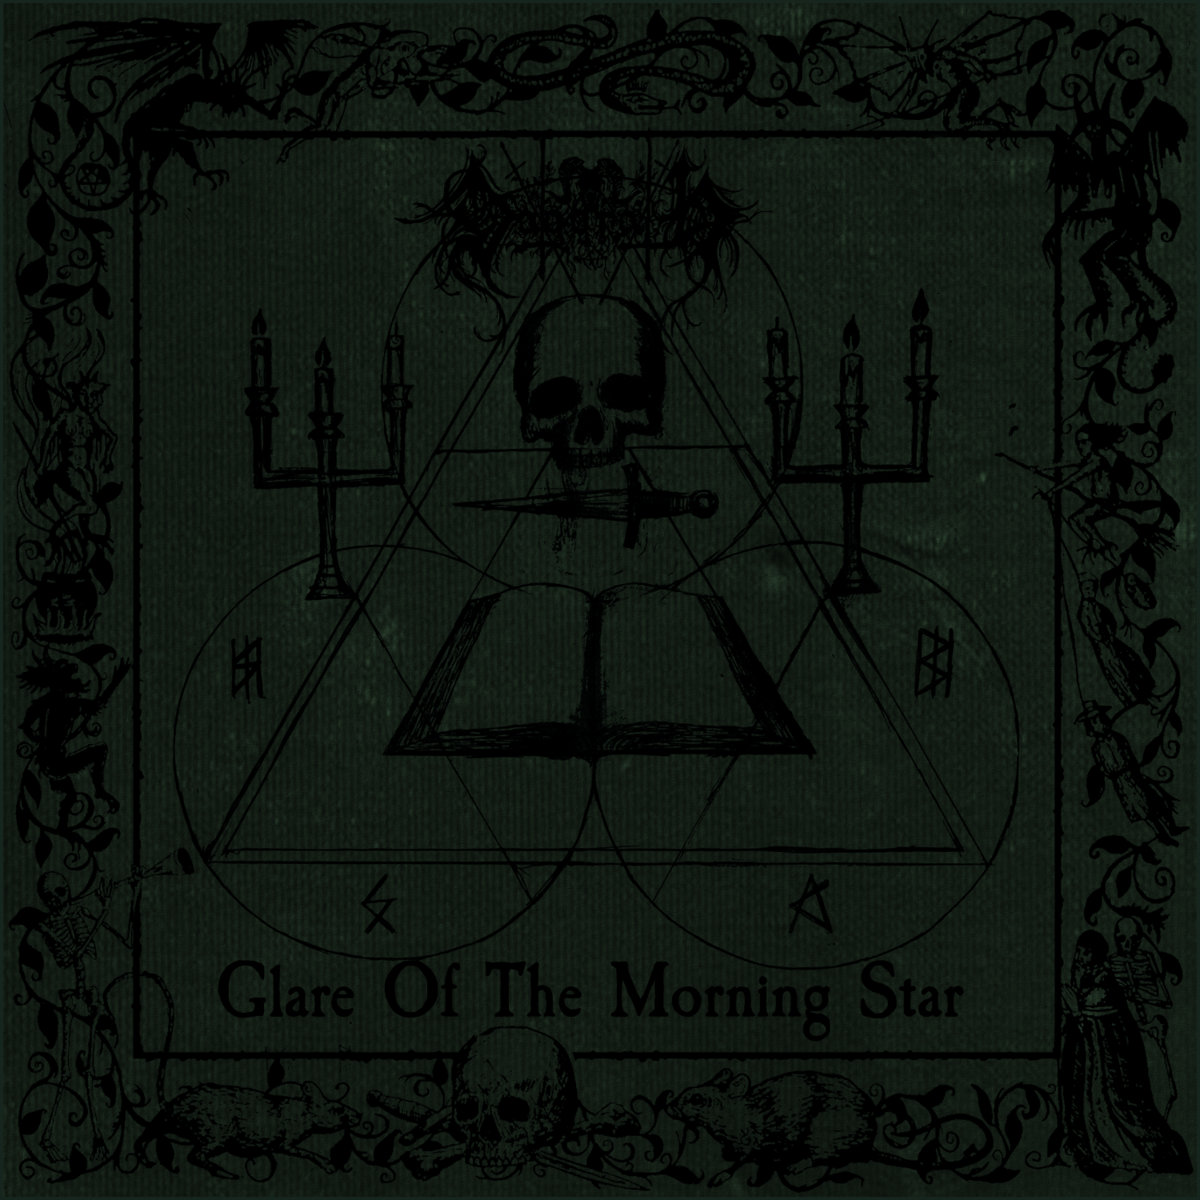 Dagorath - Glare of The Morning Star